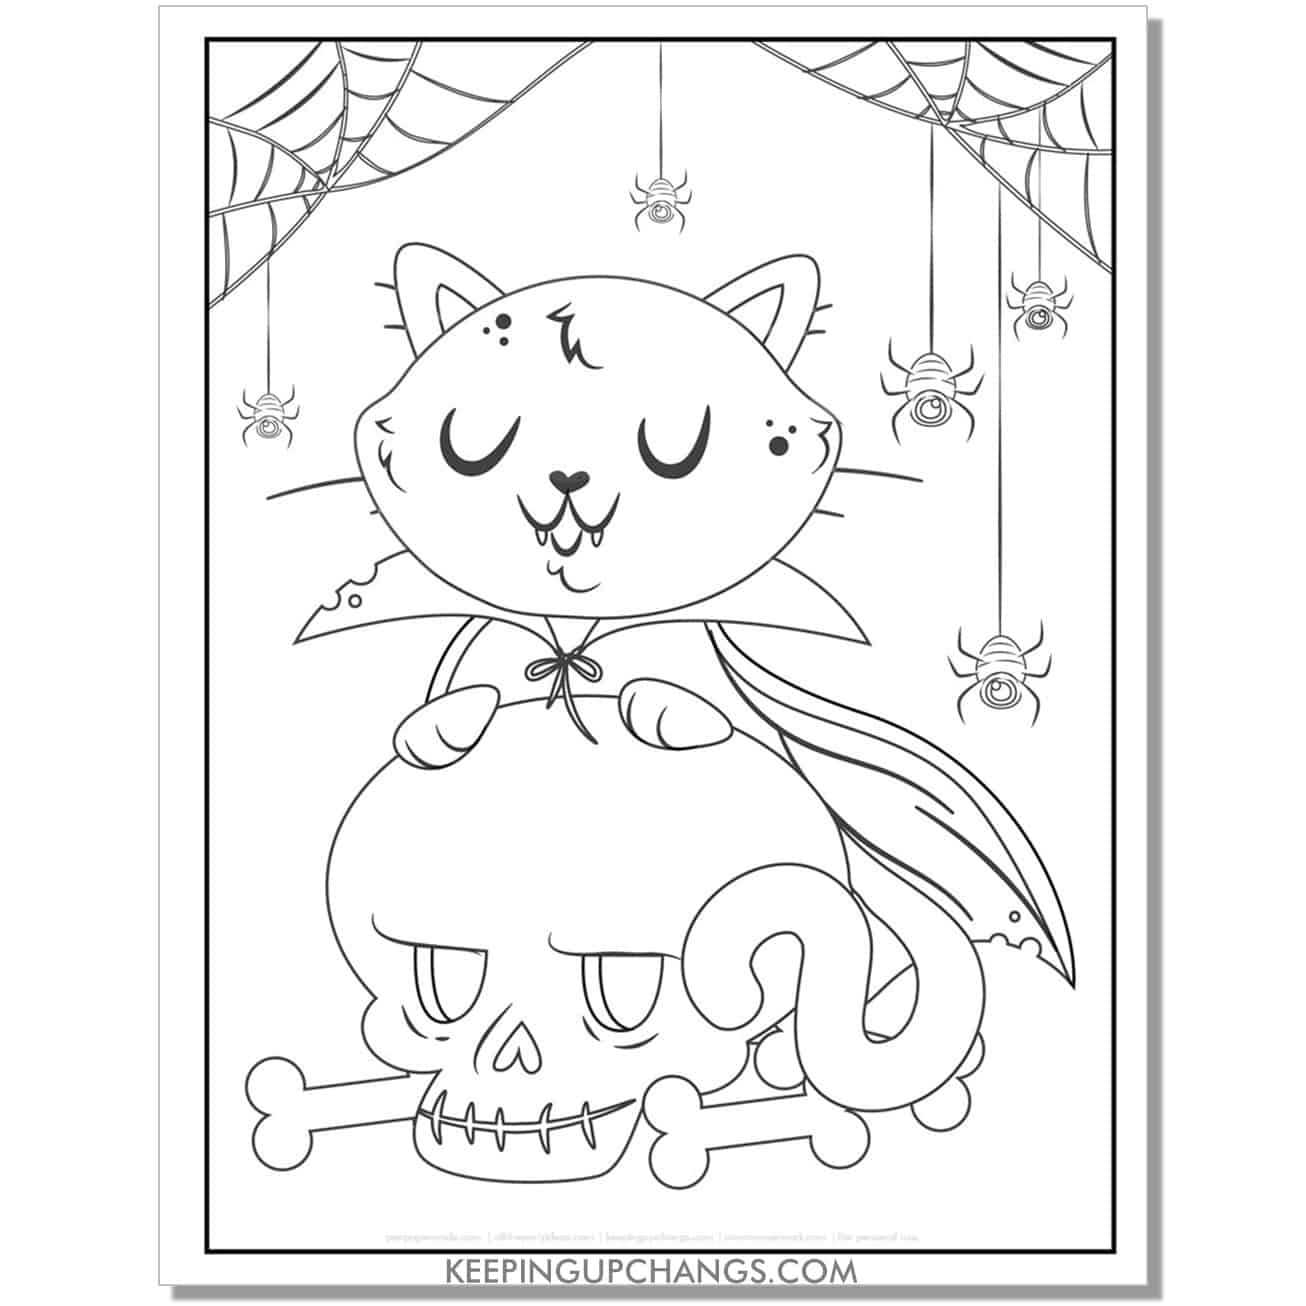 halloween cat vampire coloring page with skull, spider, cobwebs.